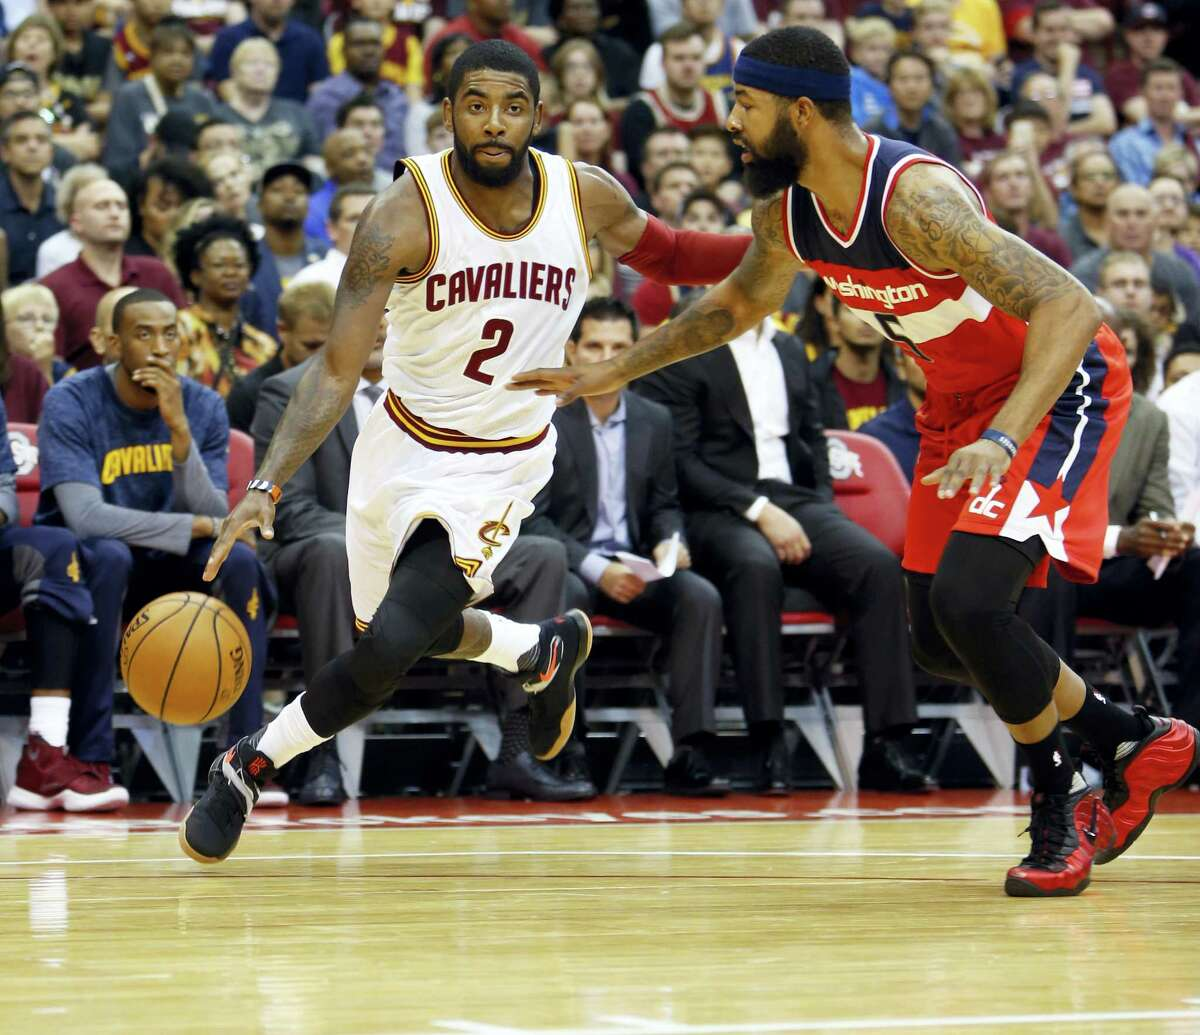 In this Oct. 18, 2016 photo, Cleveland Cavaliers' Kyrie Irving, left, drives past Washington Wizards' Markieff Morris during an NBA preseason basketball game in Columbus, Ohio. Cleveland's Big 3 — LeBron James, Kevin Love and Irving — have finally meshed after two turbulent, strange seasons when the trio of All-Stars were often disconnected. But whatever kept them from uniting seems to be resolved and they're determined to add to their legacy.